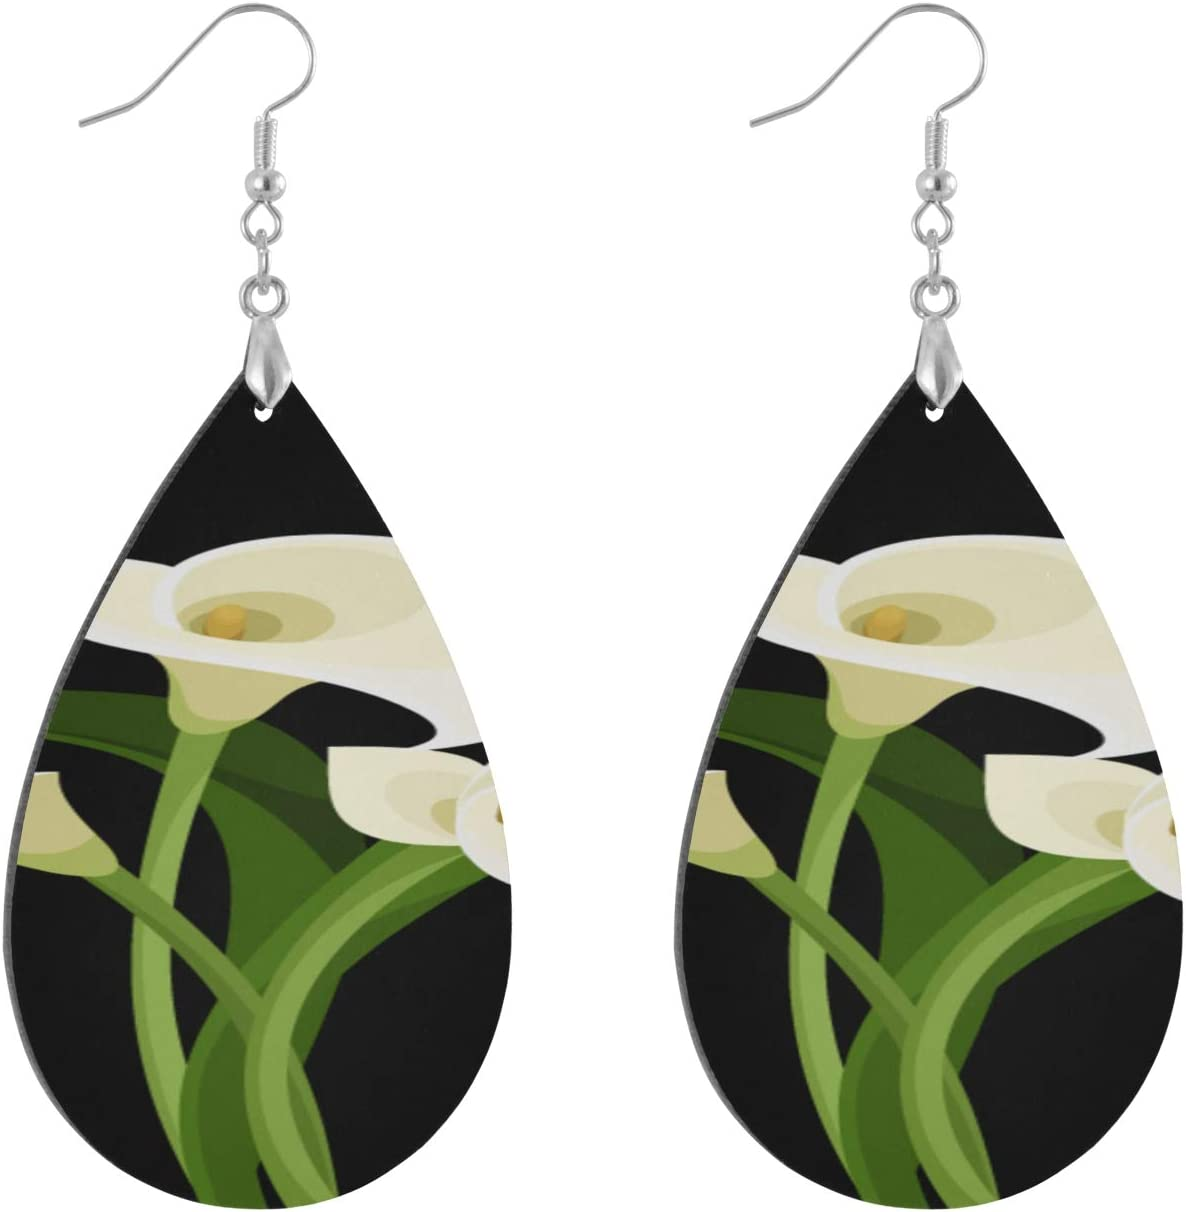 Huqalh Elegant Fashionable Calla Lily Wooden Earrings Fashion Painted Dangle Geometric Personalized Dangle Earrings for Women Fashion Water Drop/Leaf Wooden Earring for Women Lady Girls